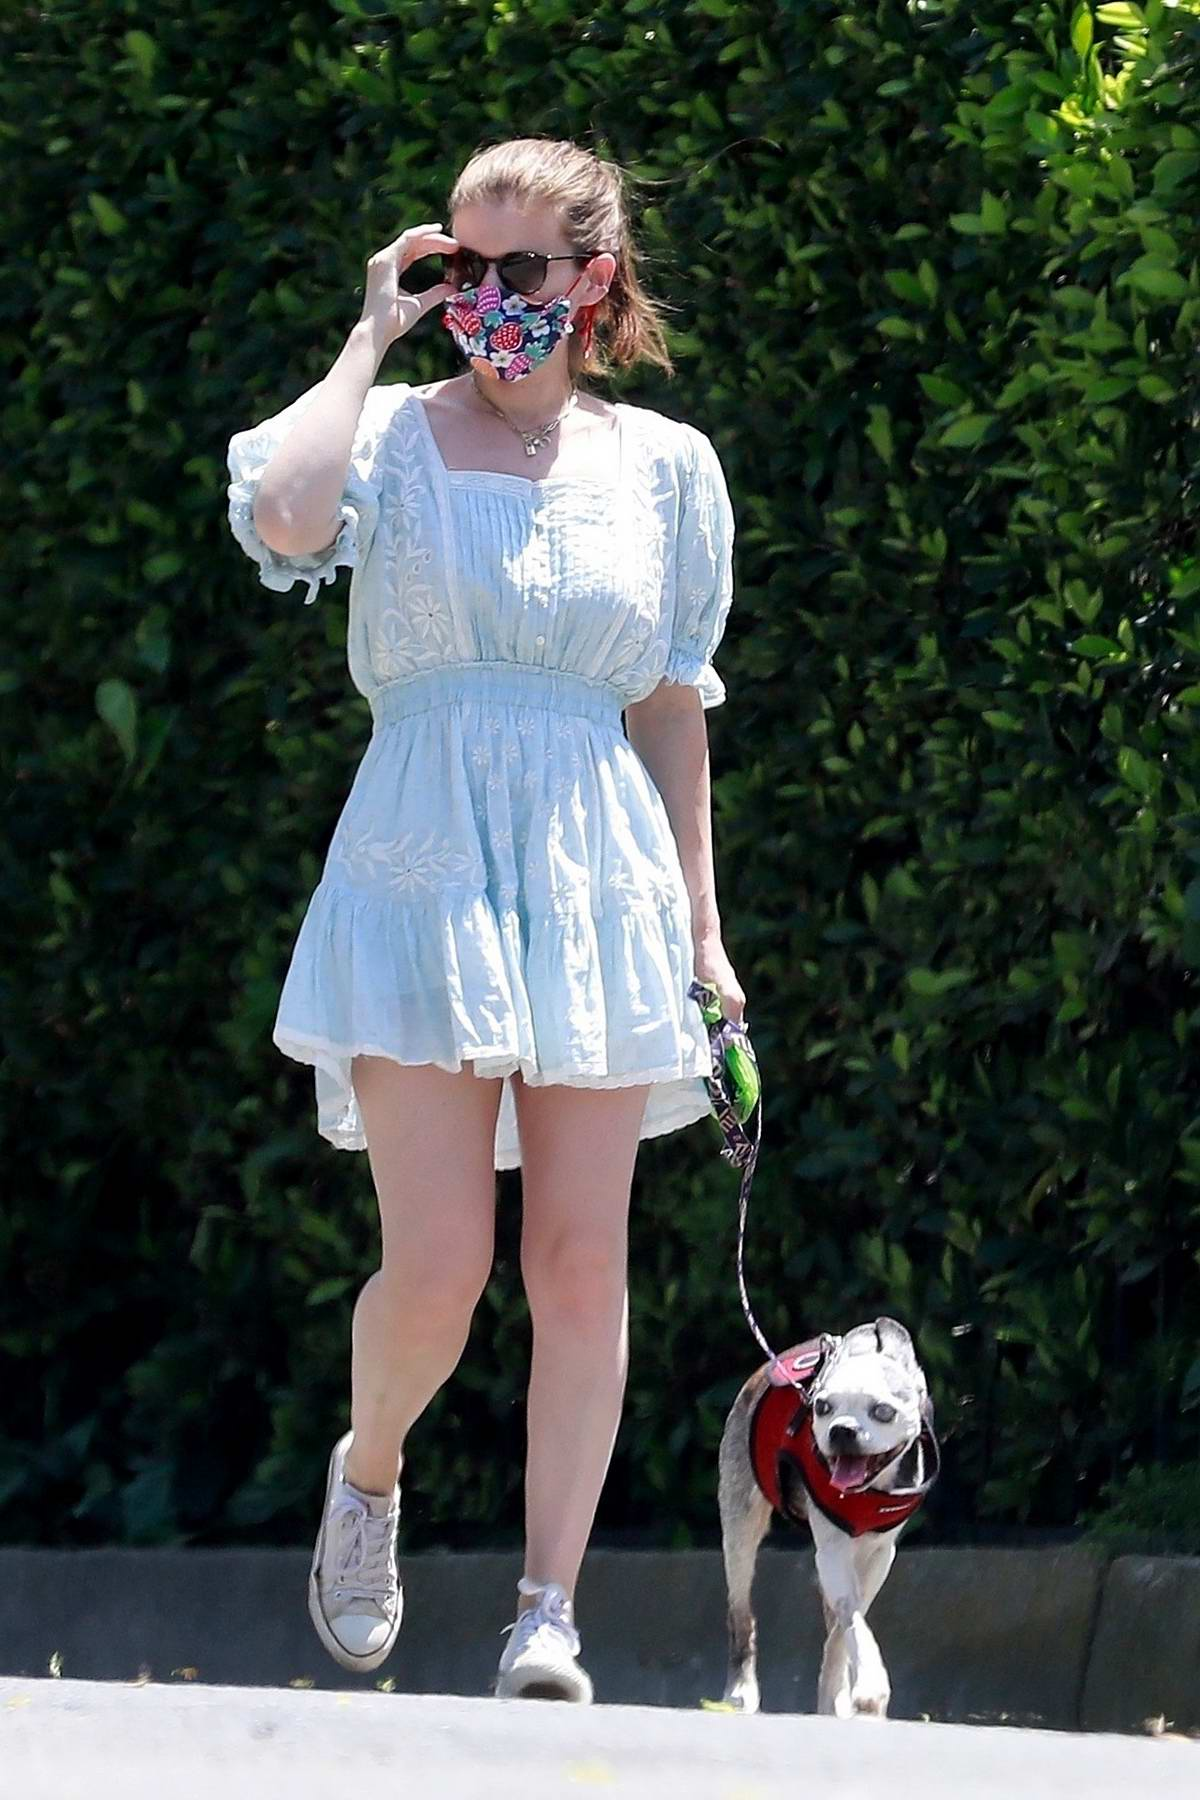 Kate Mara looks lovely in a cute little blue dress as she takes her dog out for a walk in Los Feliz, California